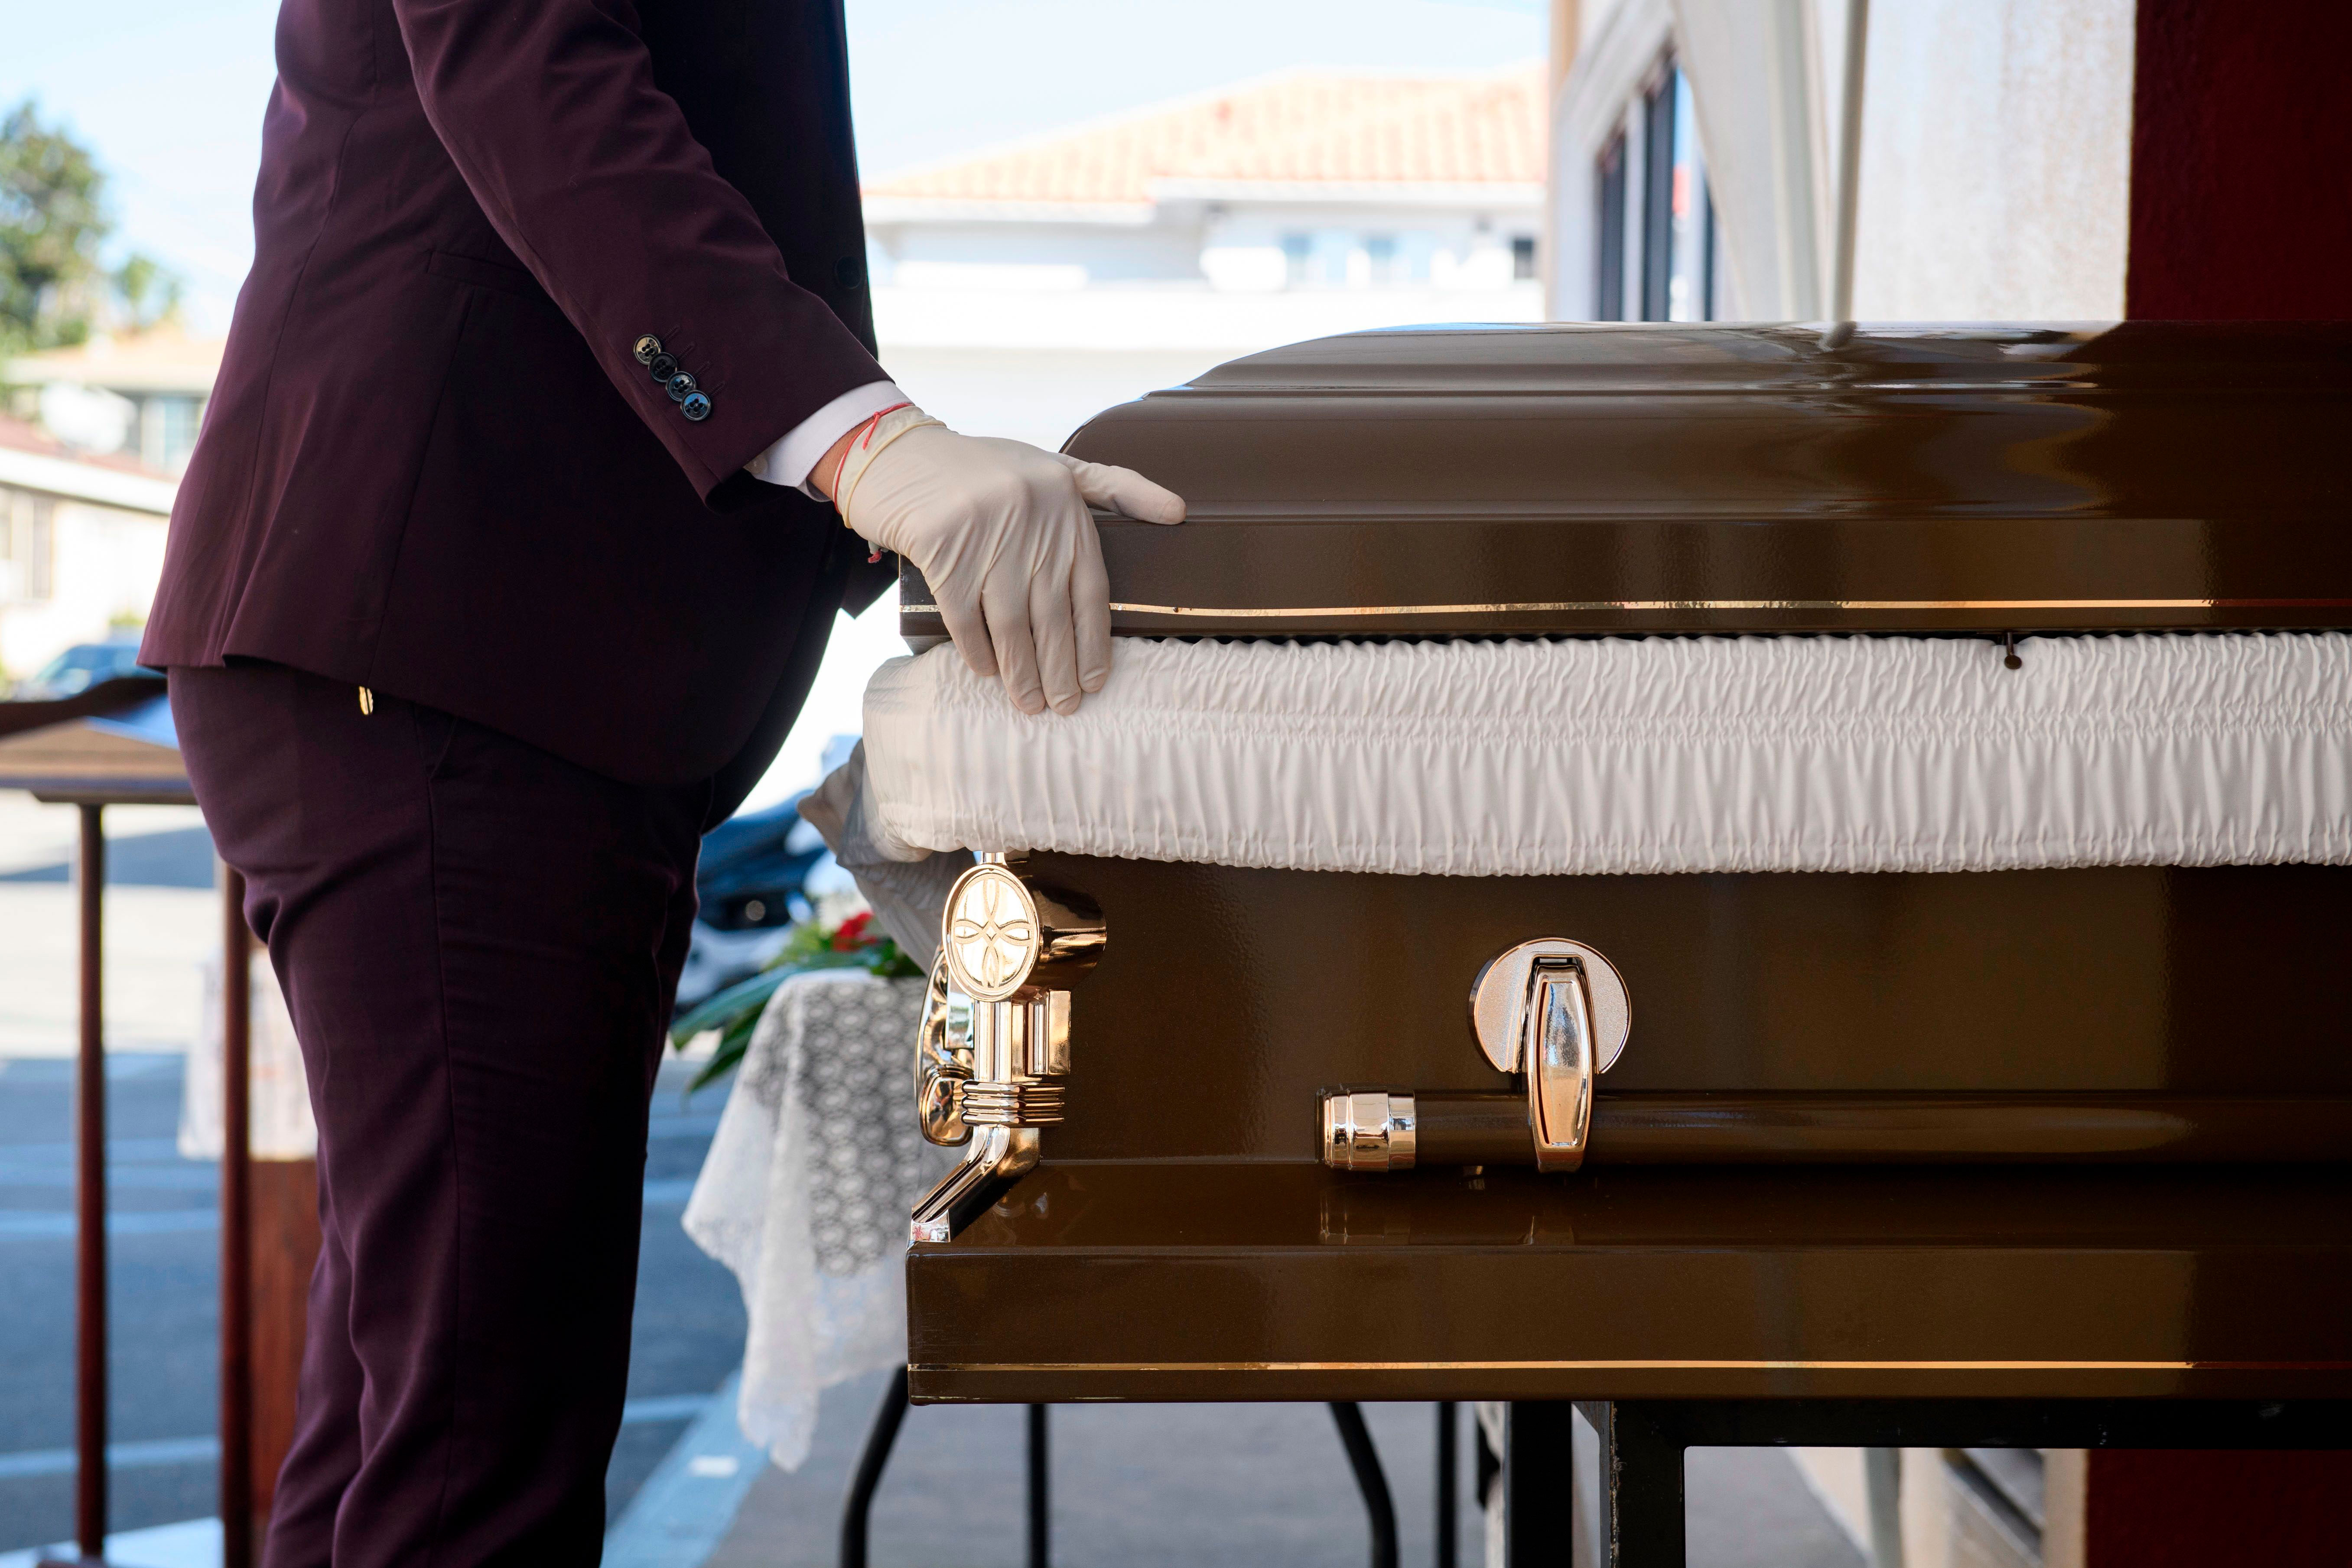 Funeral director Steven Correa moves the casket of someone said to have died from Covid-19 in preparation for burial at Continental Funeral Home in East Los Angeles, California, on December 31, 2020.